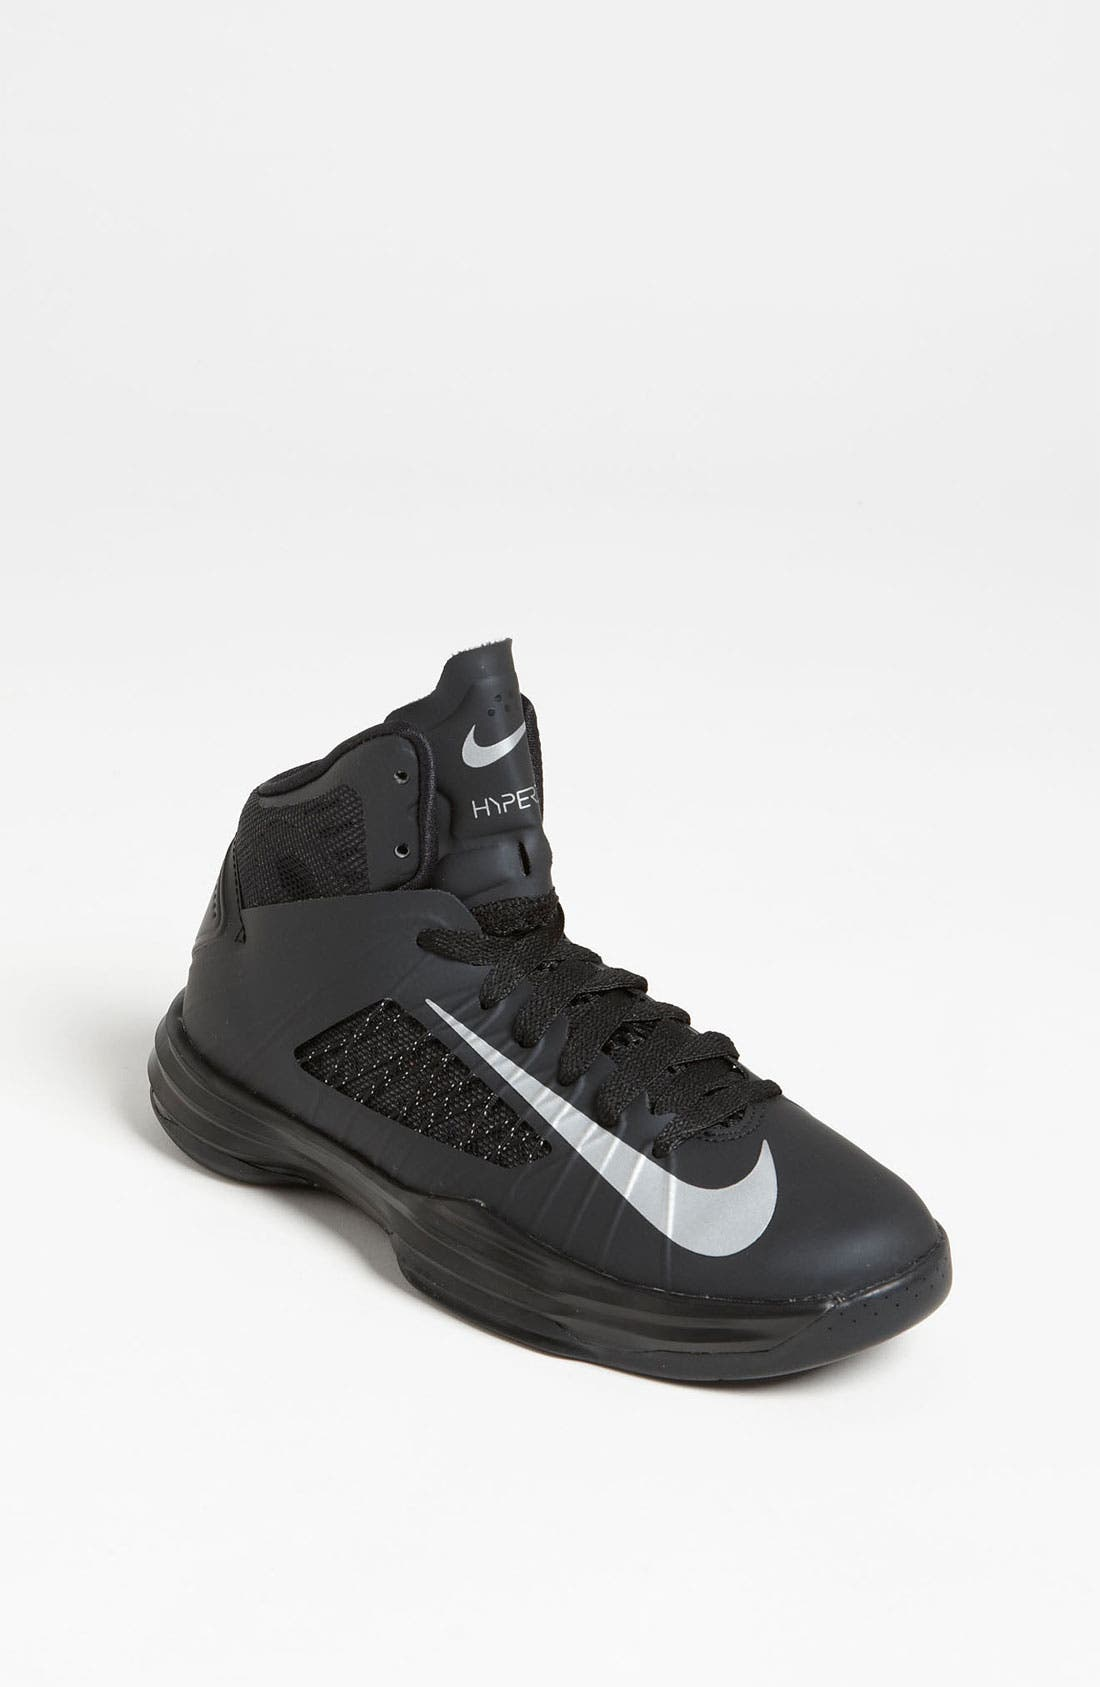 Alternate Image 1 Selected - Nike 'Lunar Hyperdunk' Basketball Shoe (Big Kid)